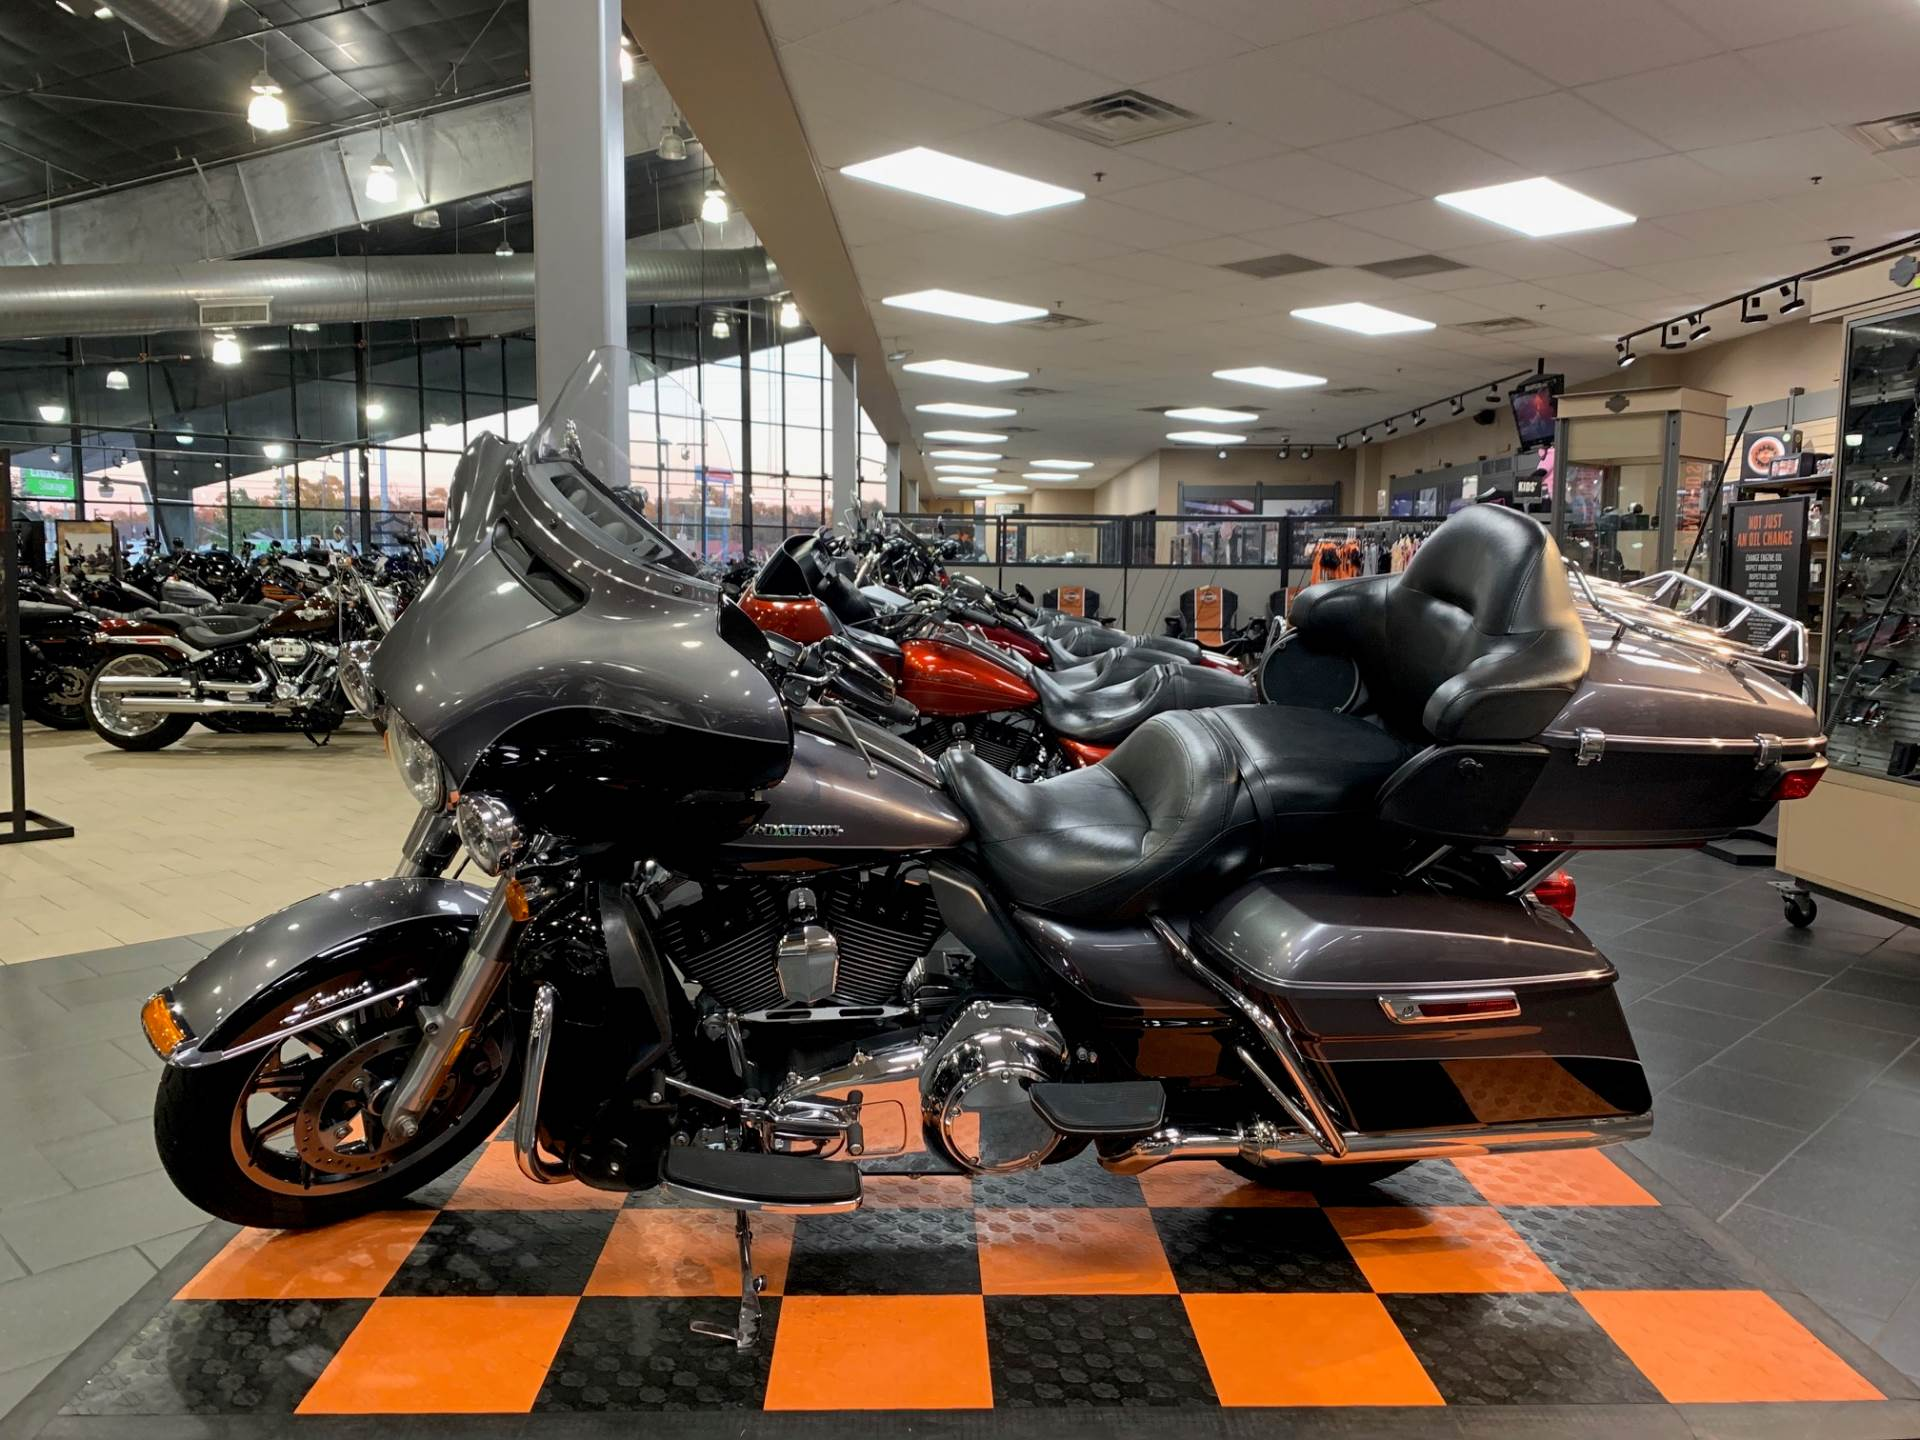 2014 Harley-Davidson Ultra Limited in The Woodlands, Texas - Photo 3